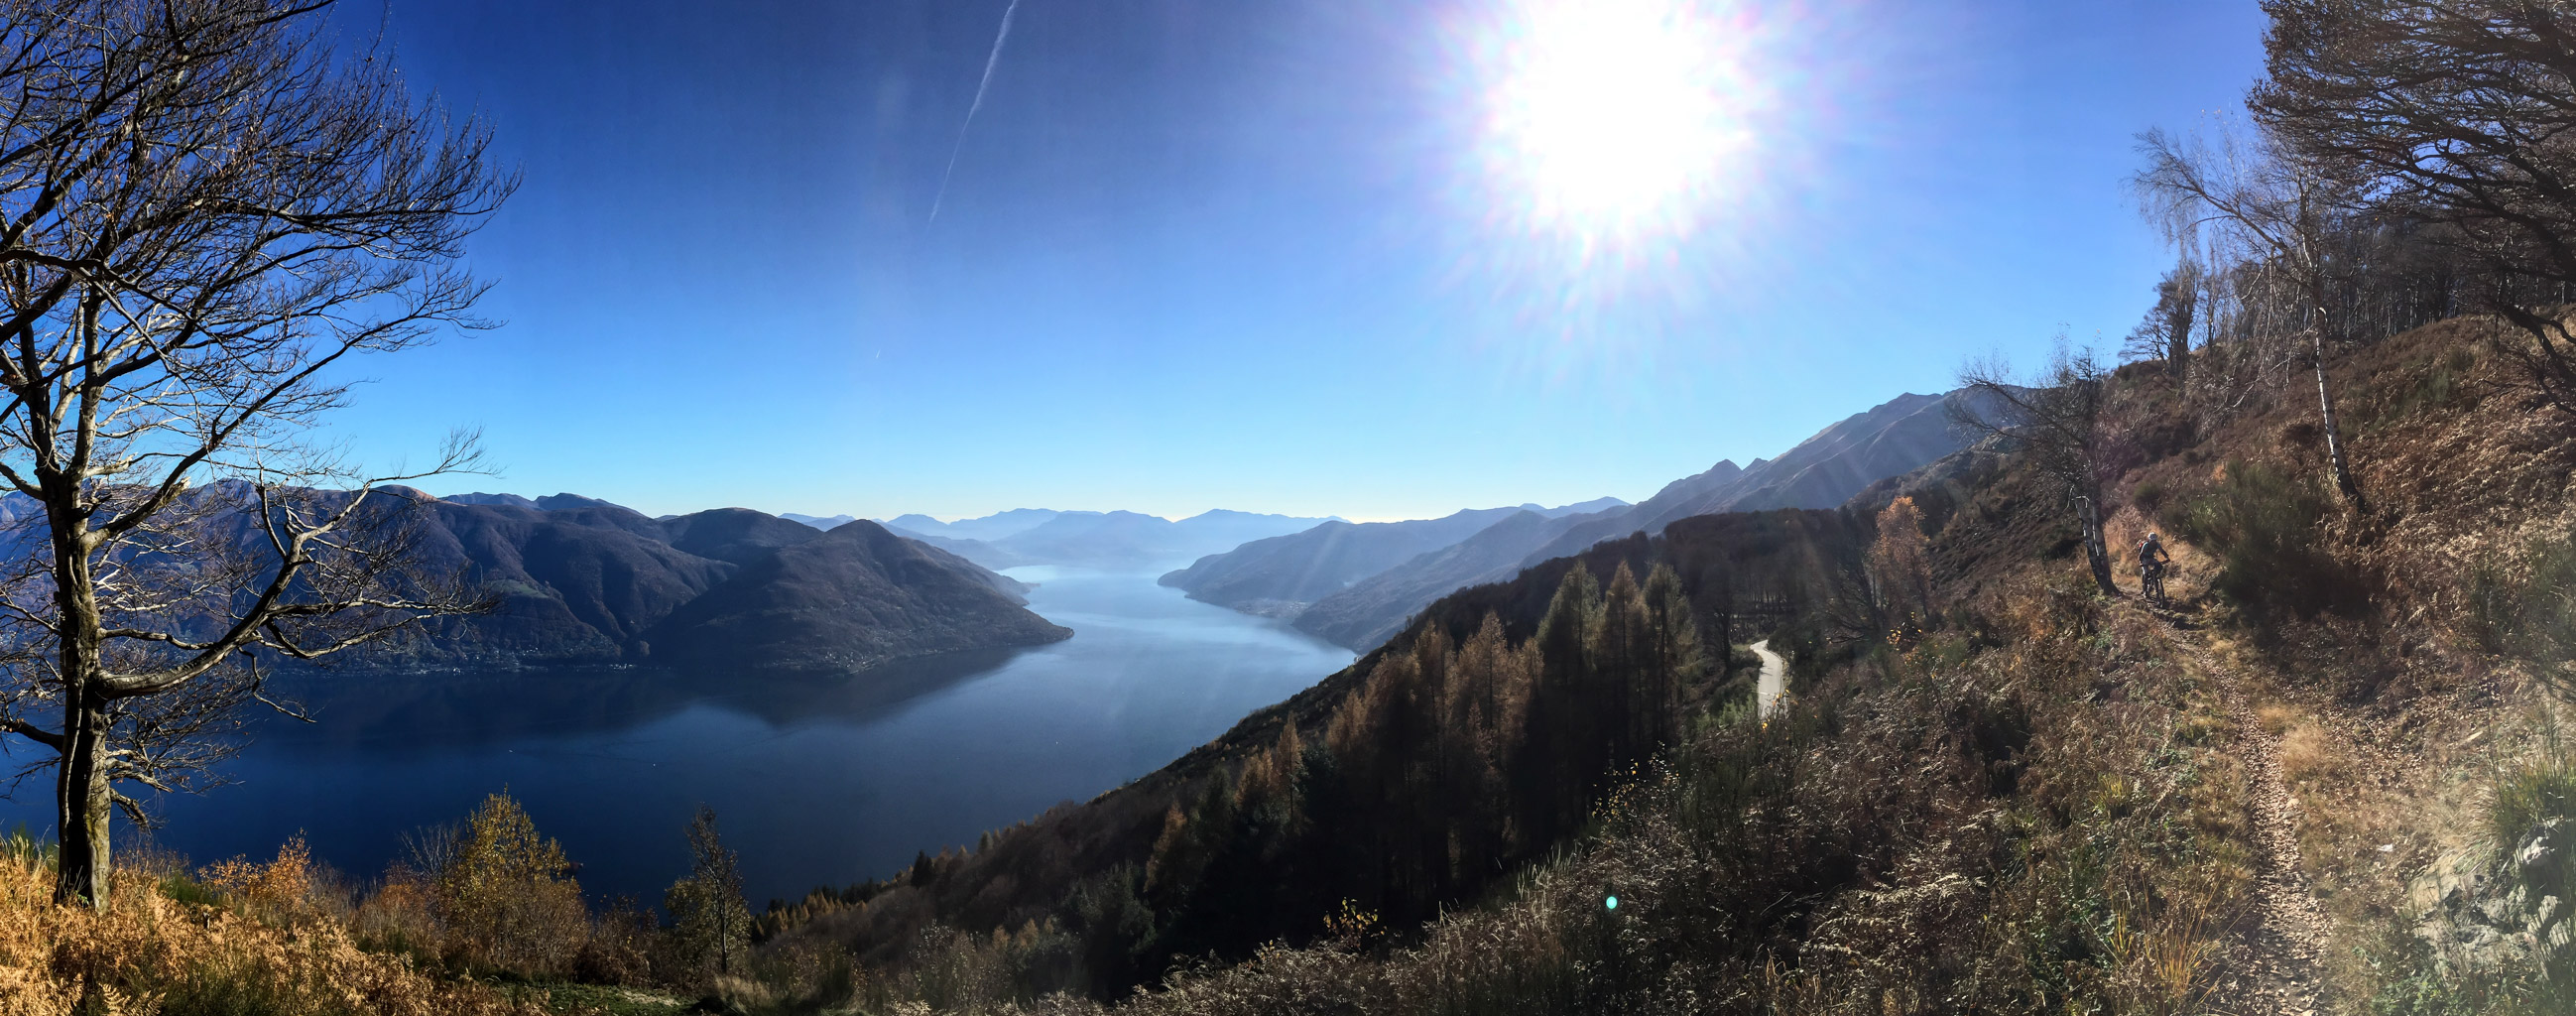 Winter biking at Lago Maggiore